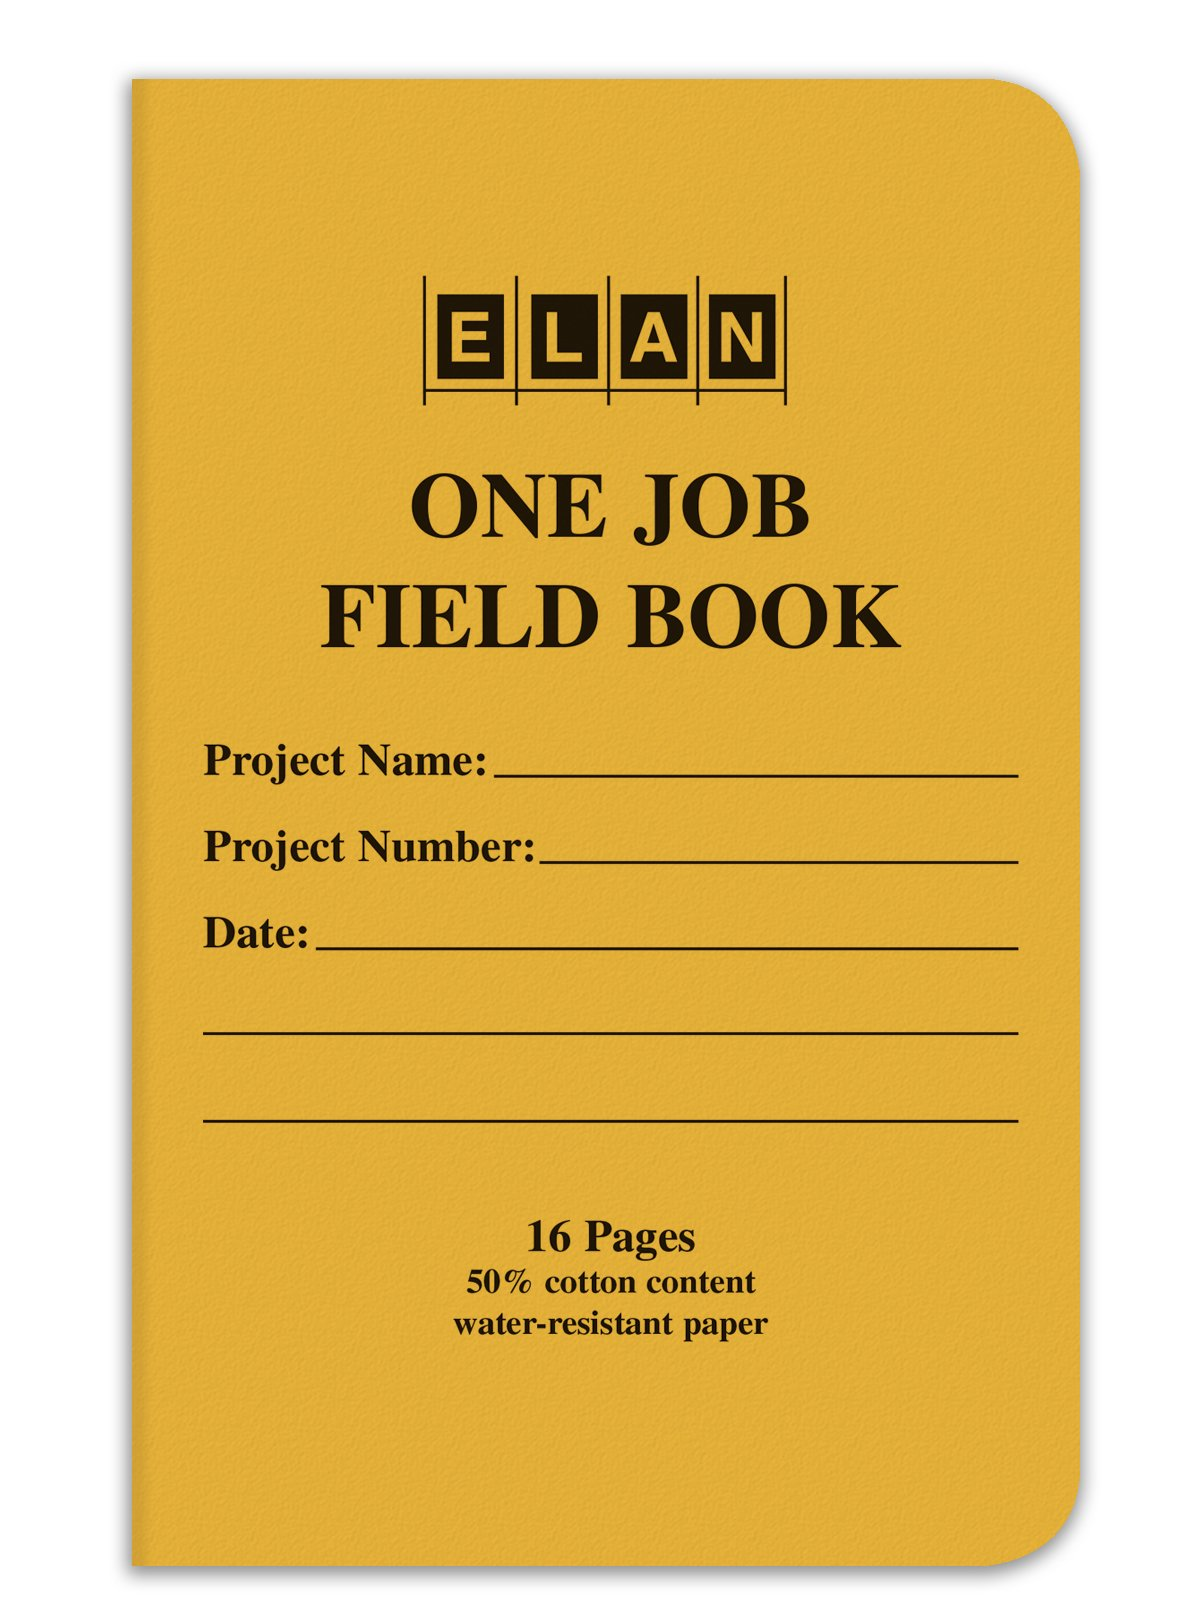 Elan Publishing Company One-Job Saddle Stiched Field Surveying Book 4 ⅝ x 7 Yellow Stiff Cover (Pack of 12)